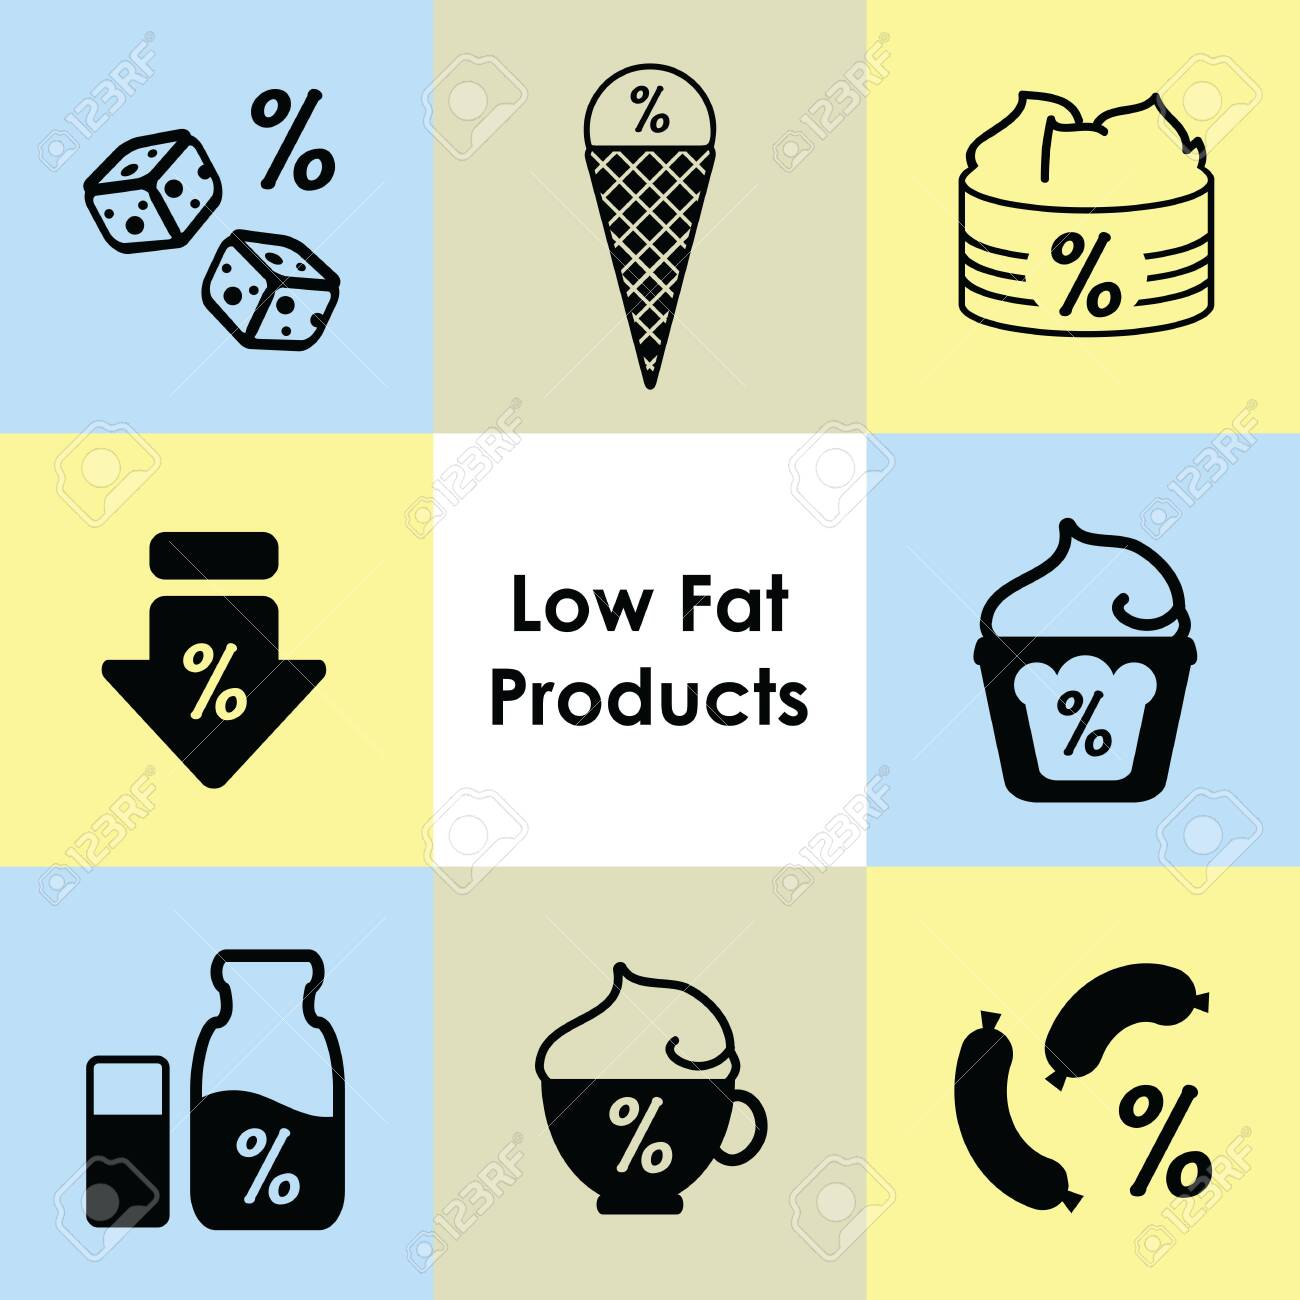 ¬vector illustration of low fat products icons - 149755332